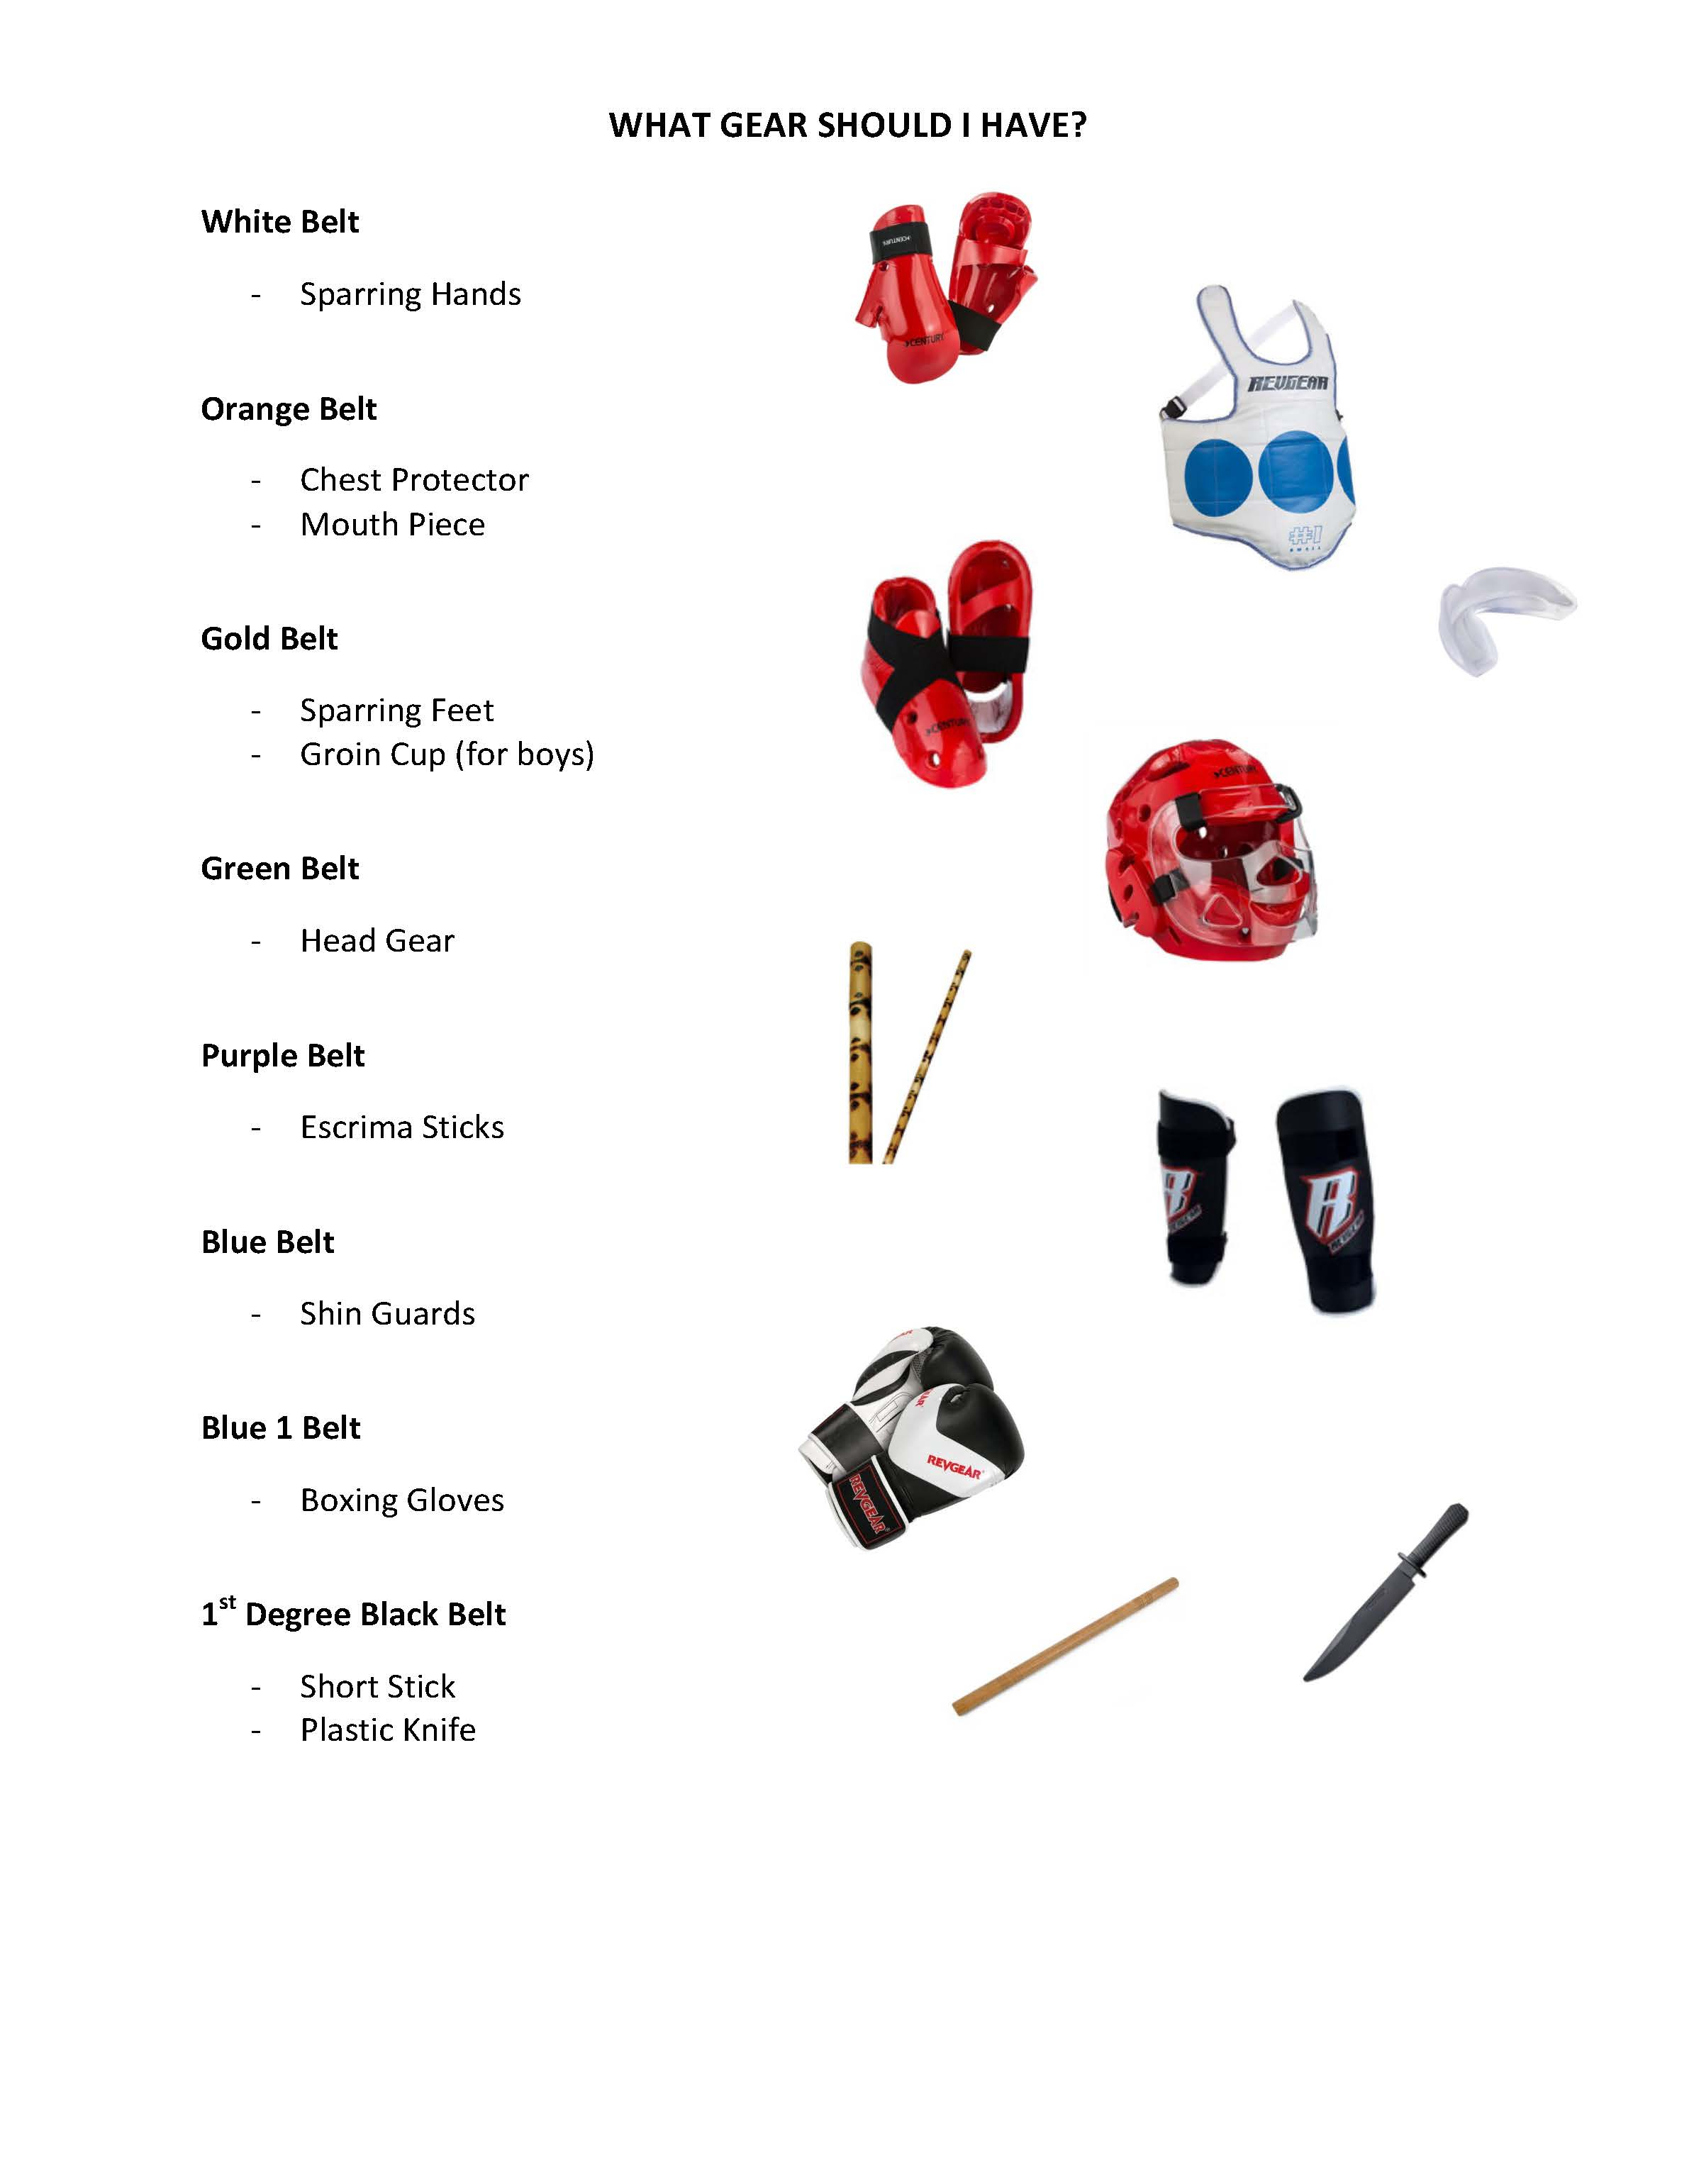 Merchandise Gear List